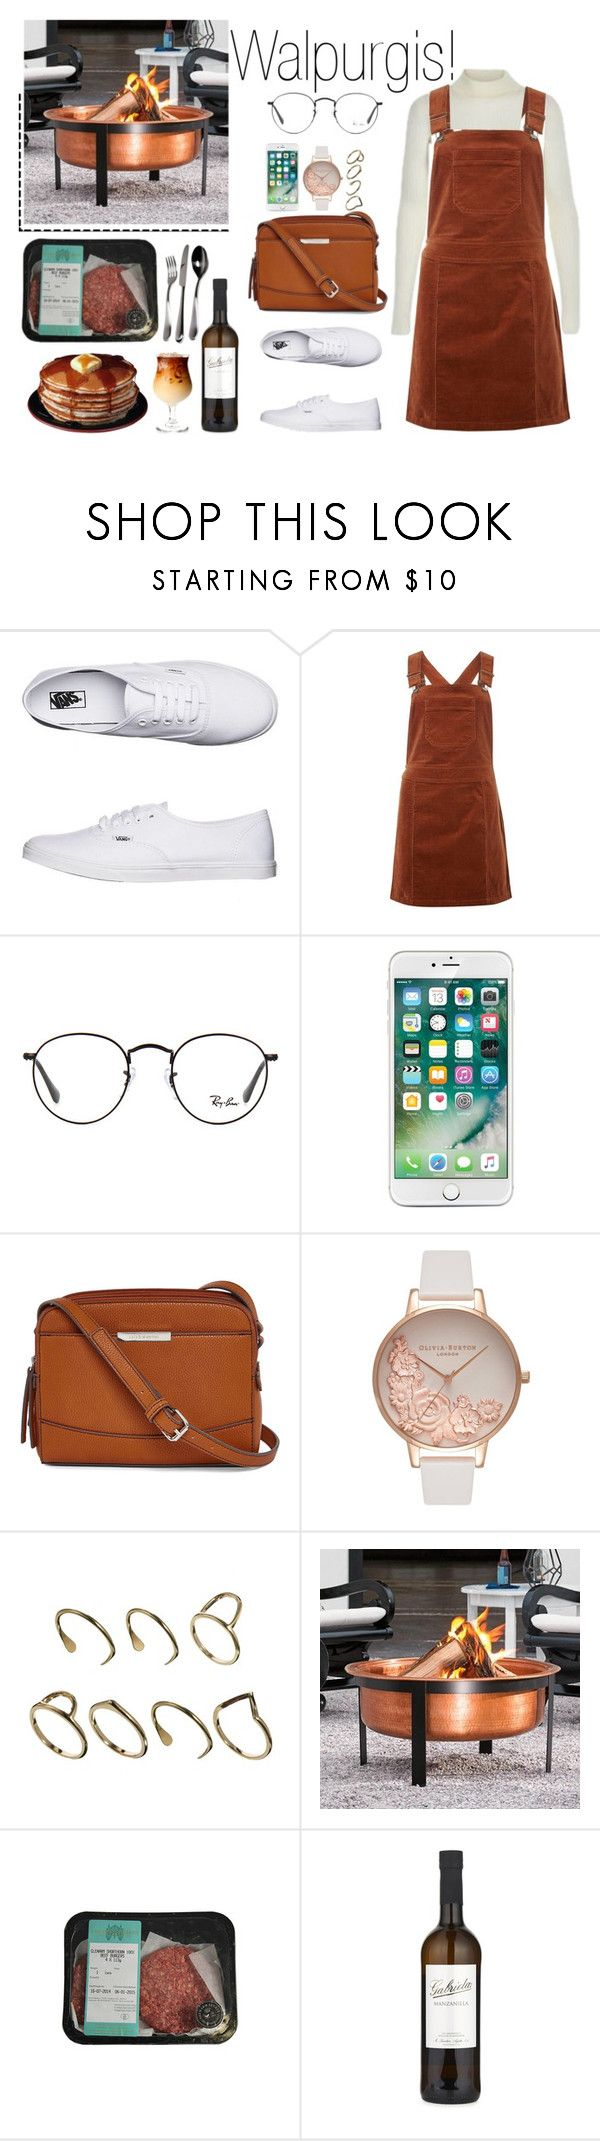 """""""Today's Walpurgis/ barbecue outfit!"""" by elisehart ❤ liked on Polyvore featuring Vans, Dorothy Perkins, Ray-Ban, Liz Claiborne, Olivia Burton, ASOS, Grandin Road and Alessi"""